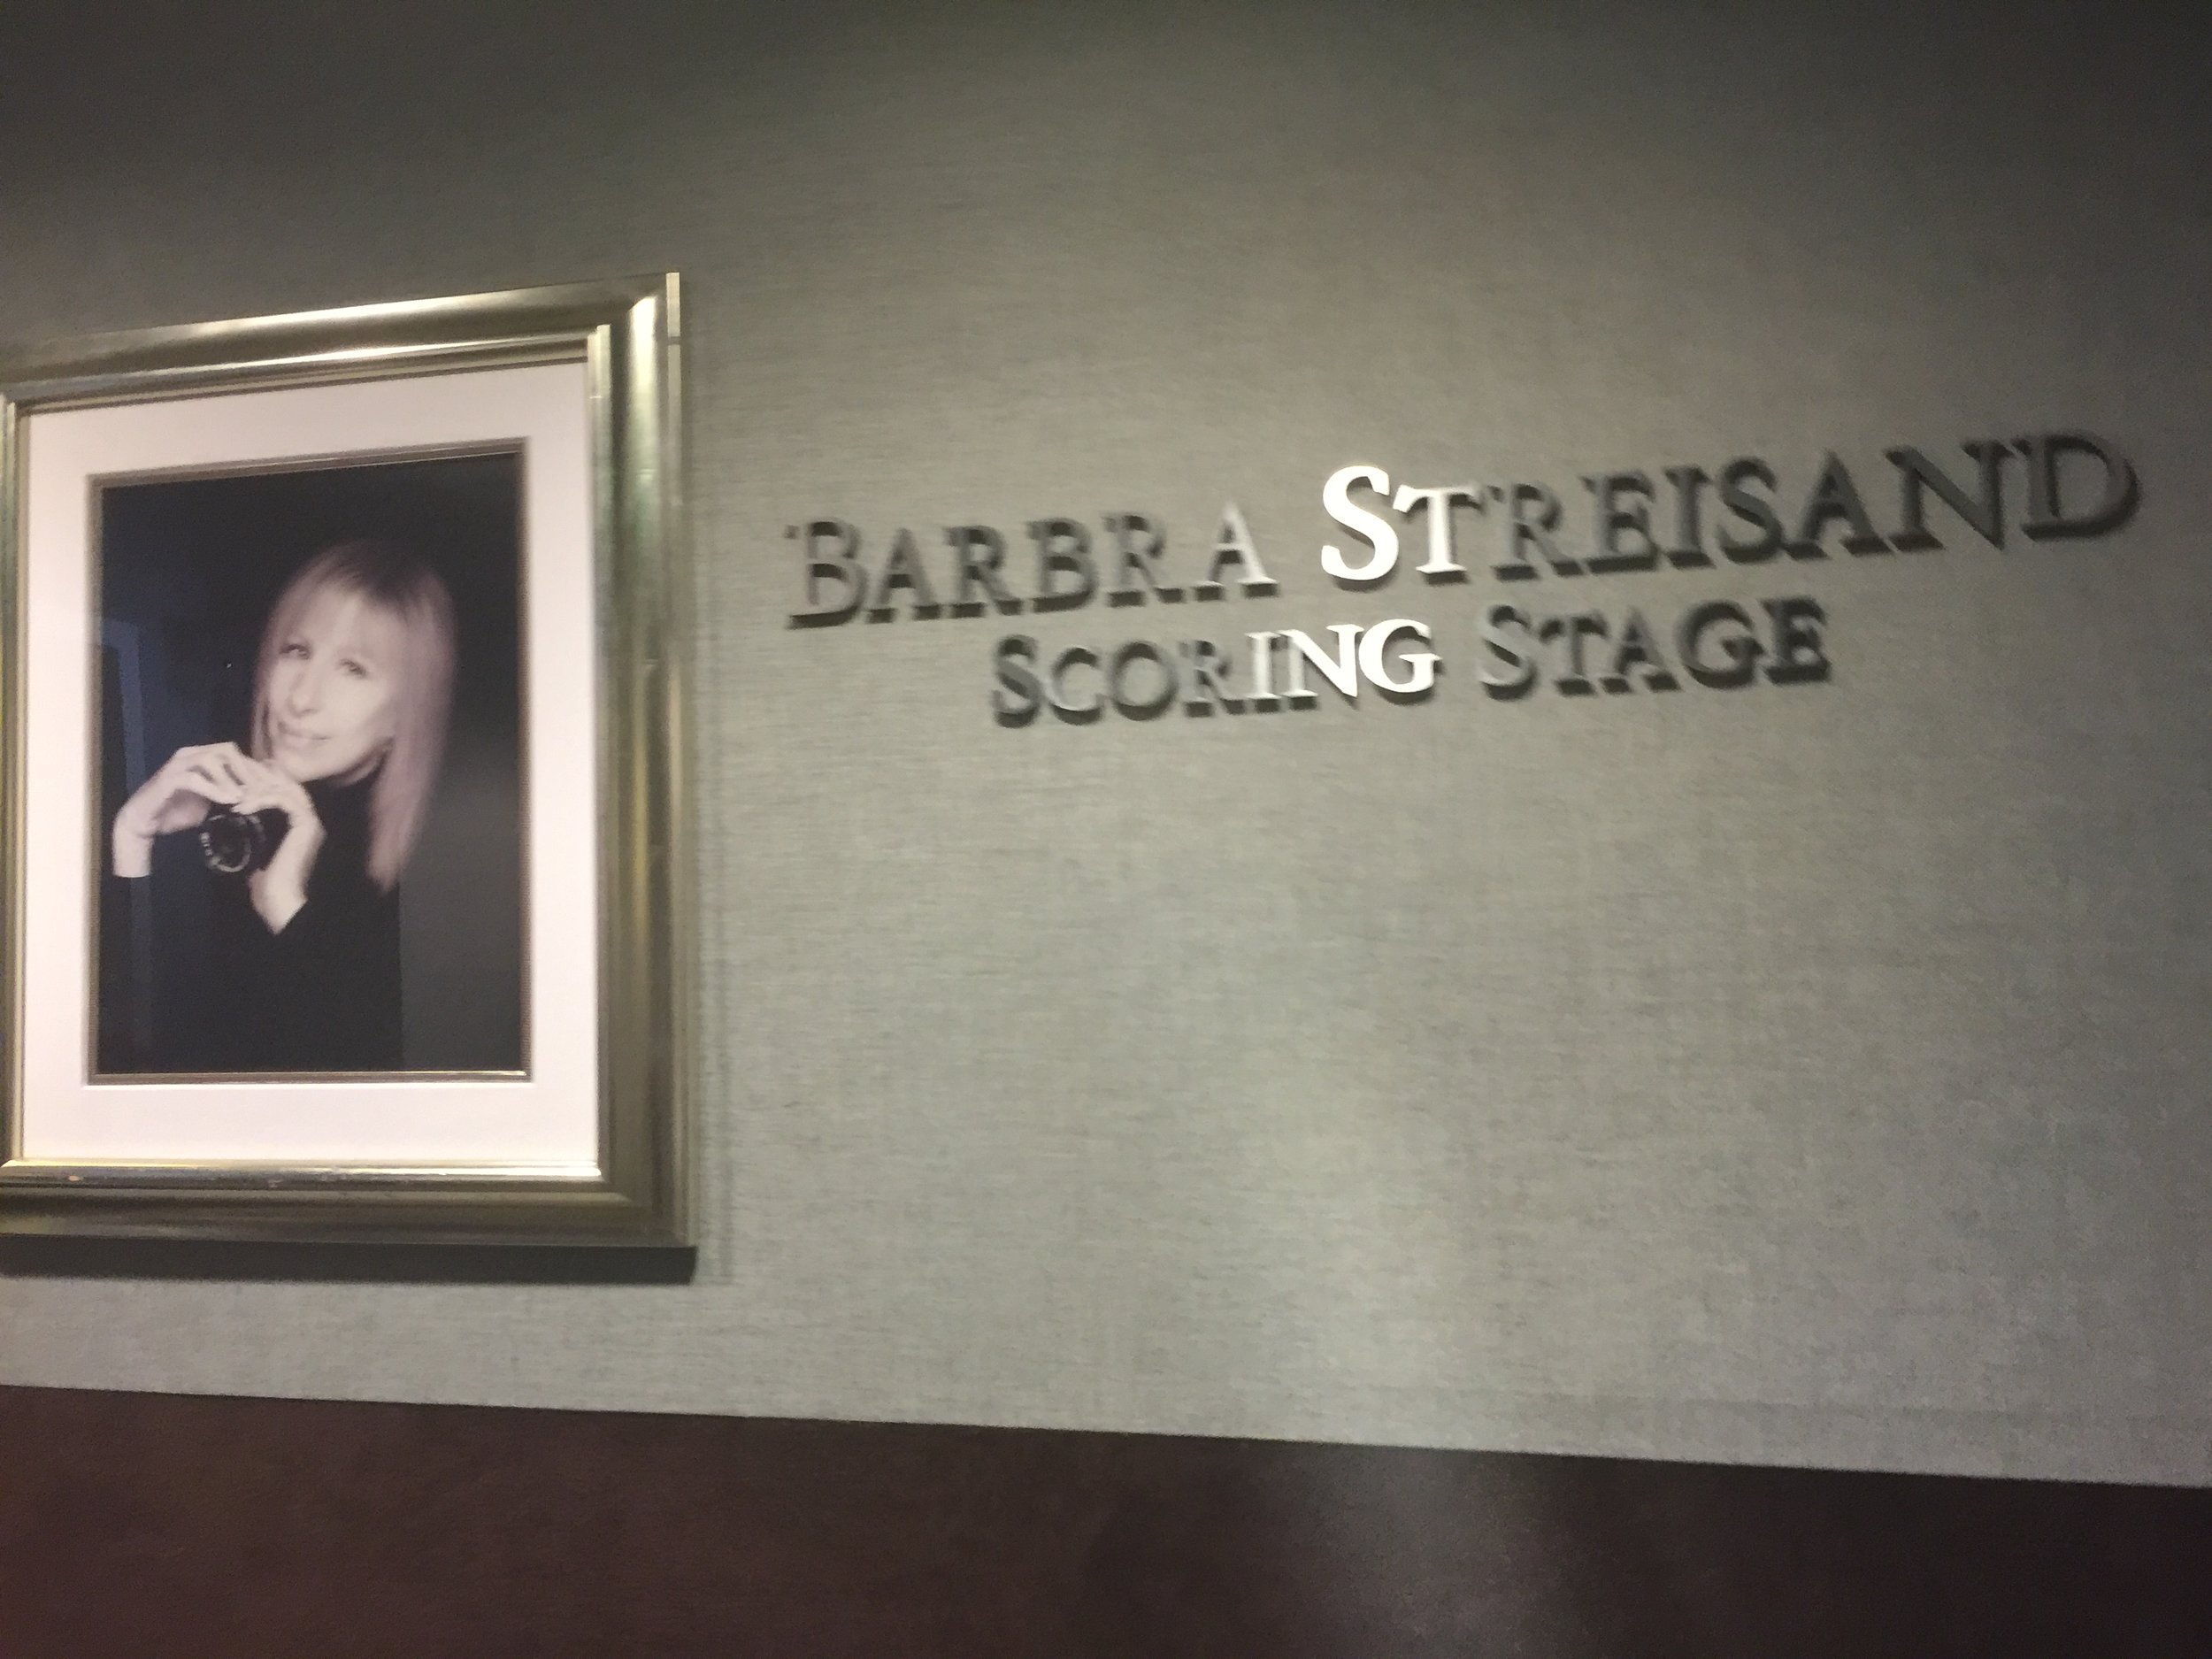 Streisand Sound studio